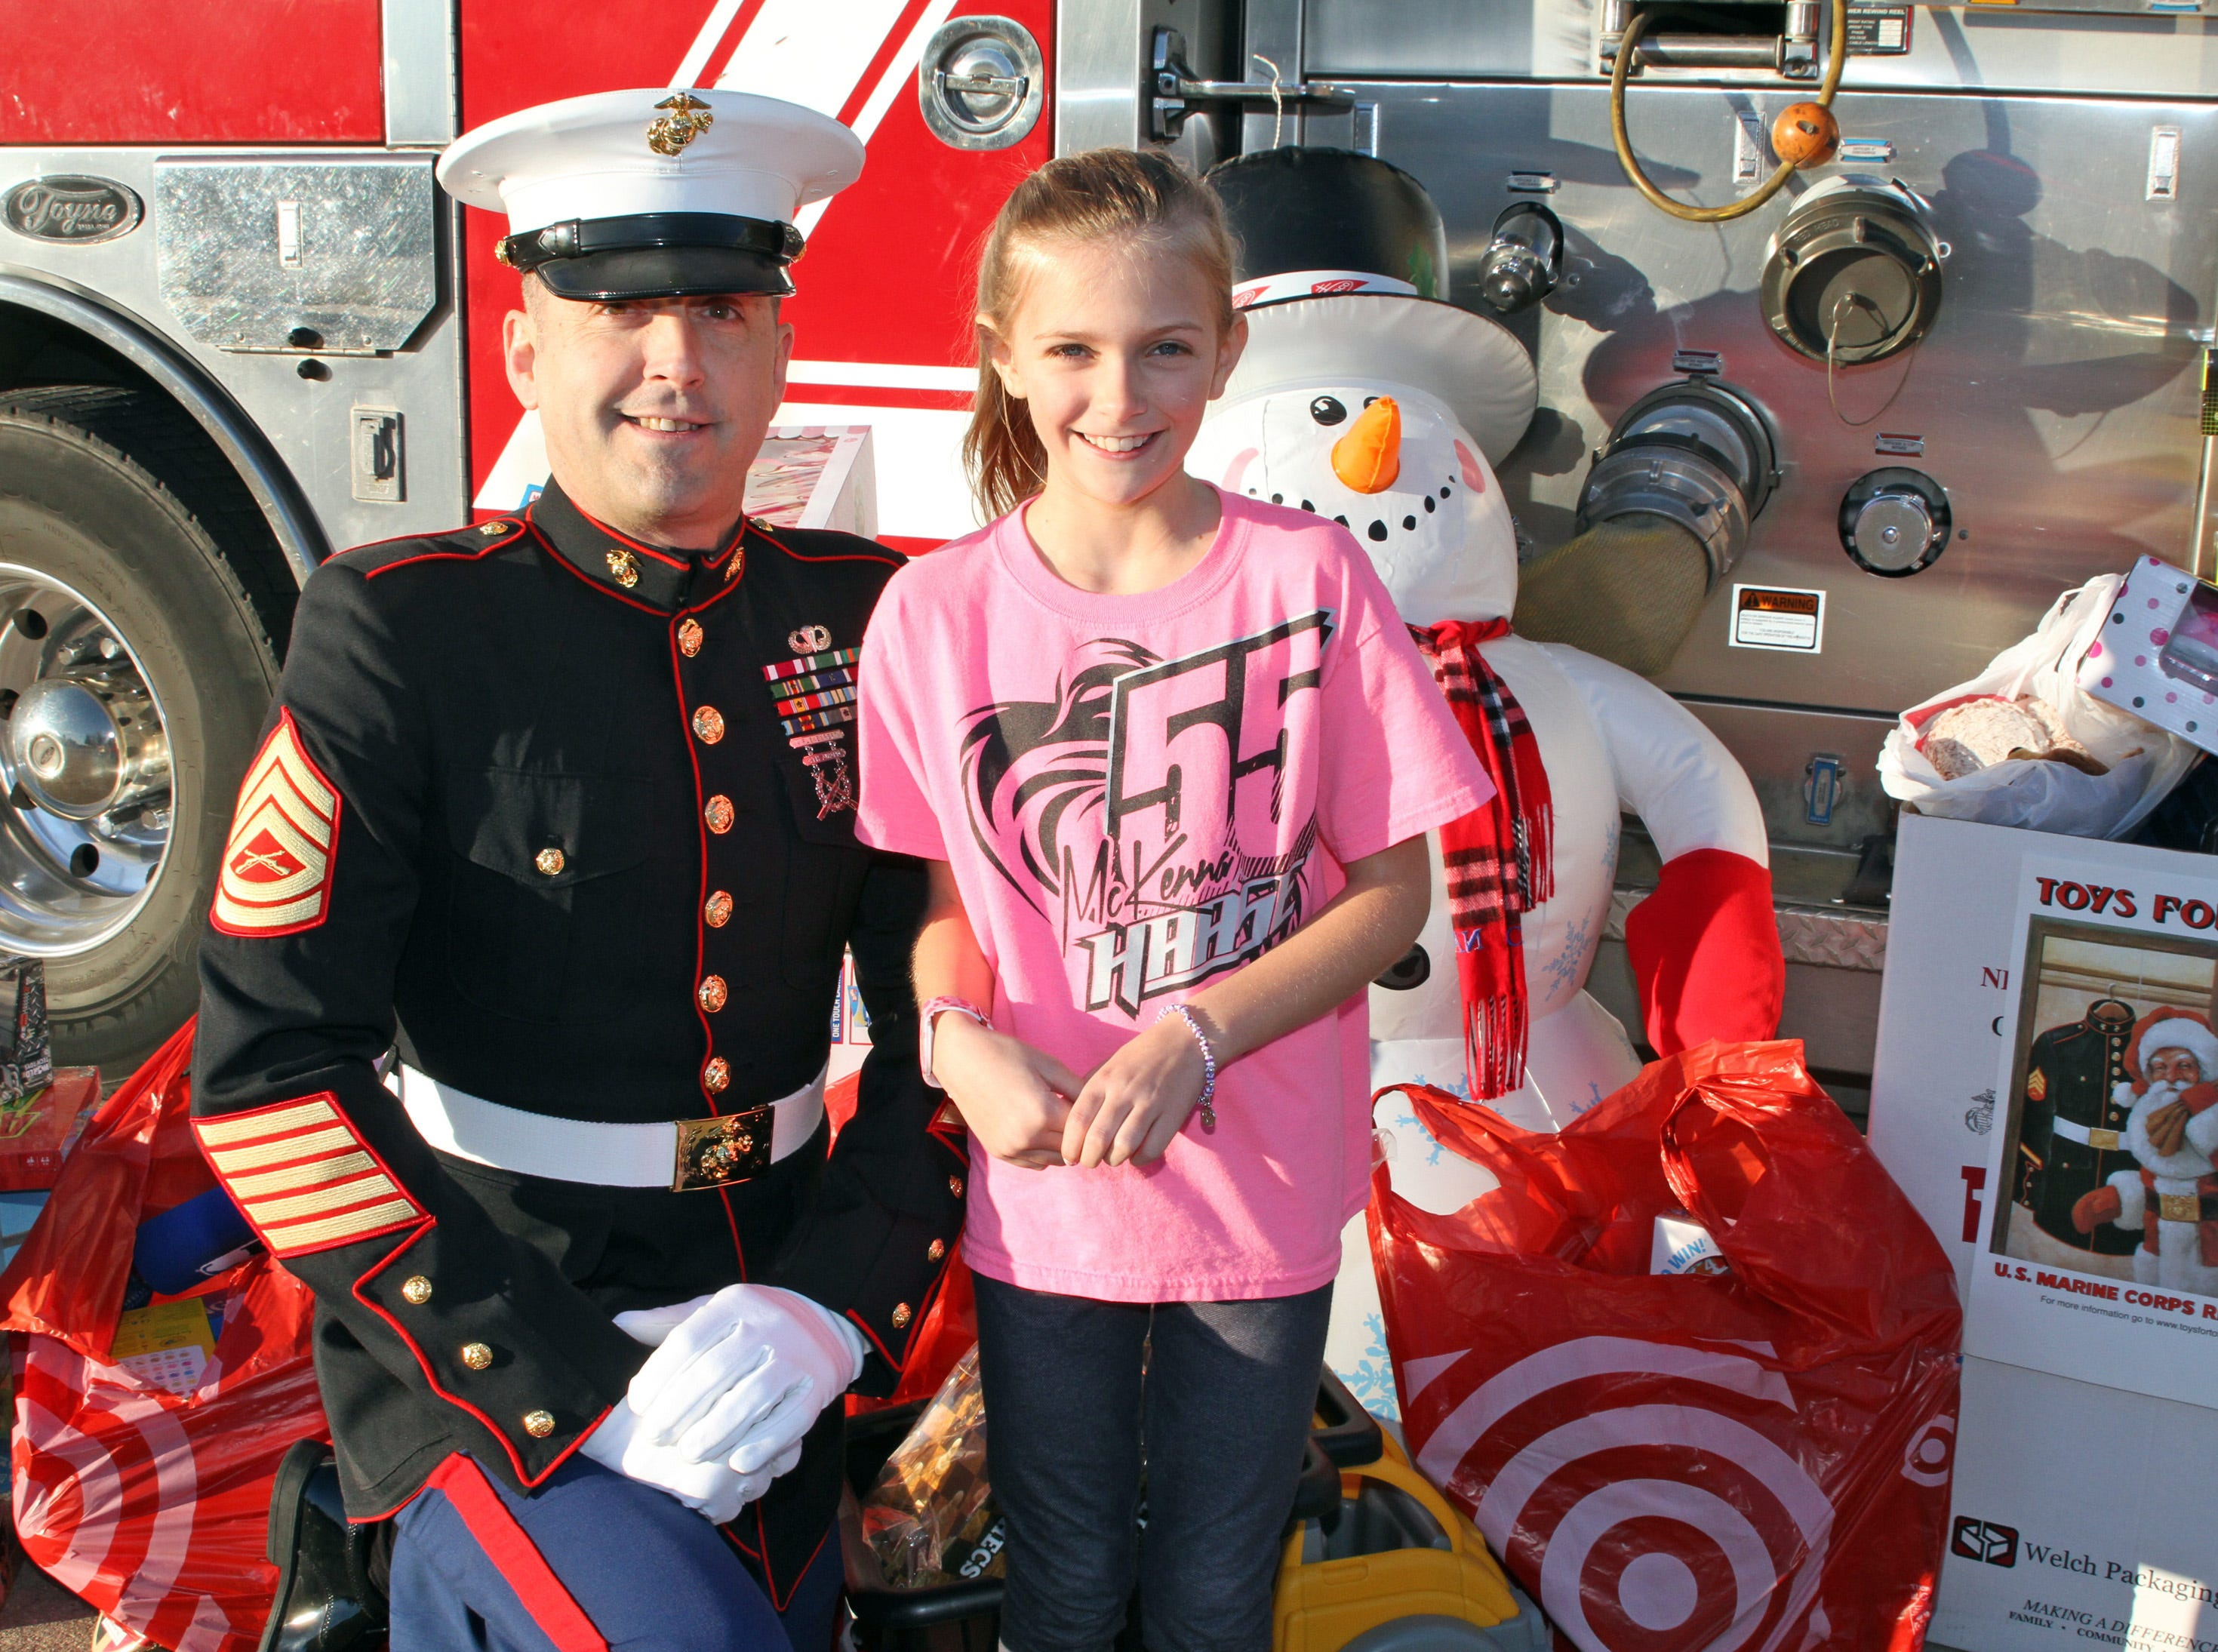 Payton Joynes, 9, of Ankeny stops for a photo with retired Marine Gunnery Sgt. Mark Amann, current member of the Ankeny Fire Department, as gifts are dropped off at Ankeny's fill the truck day. The event coincides with the U.S. Marine Corps Toys for Tots campaign at the Ankeny Fire Station Headquarters on Sunday, Dec. 16, 2018.